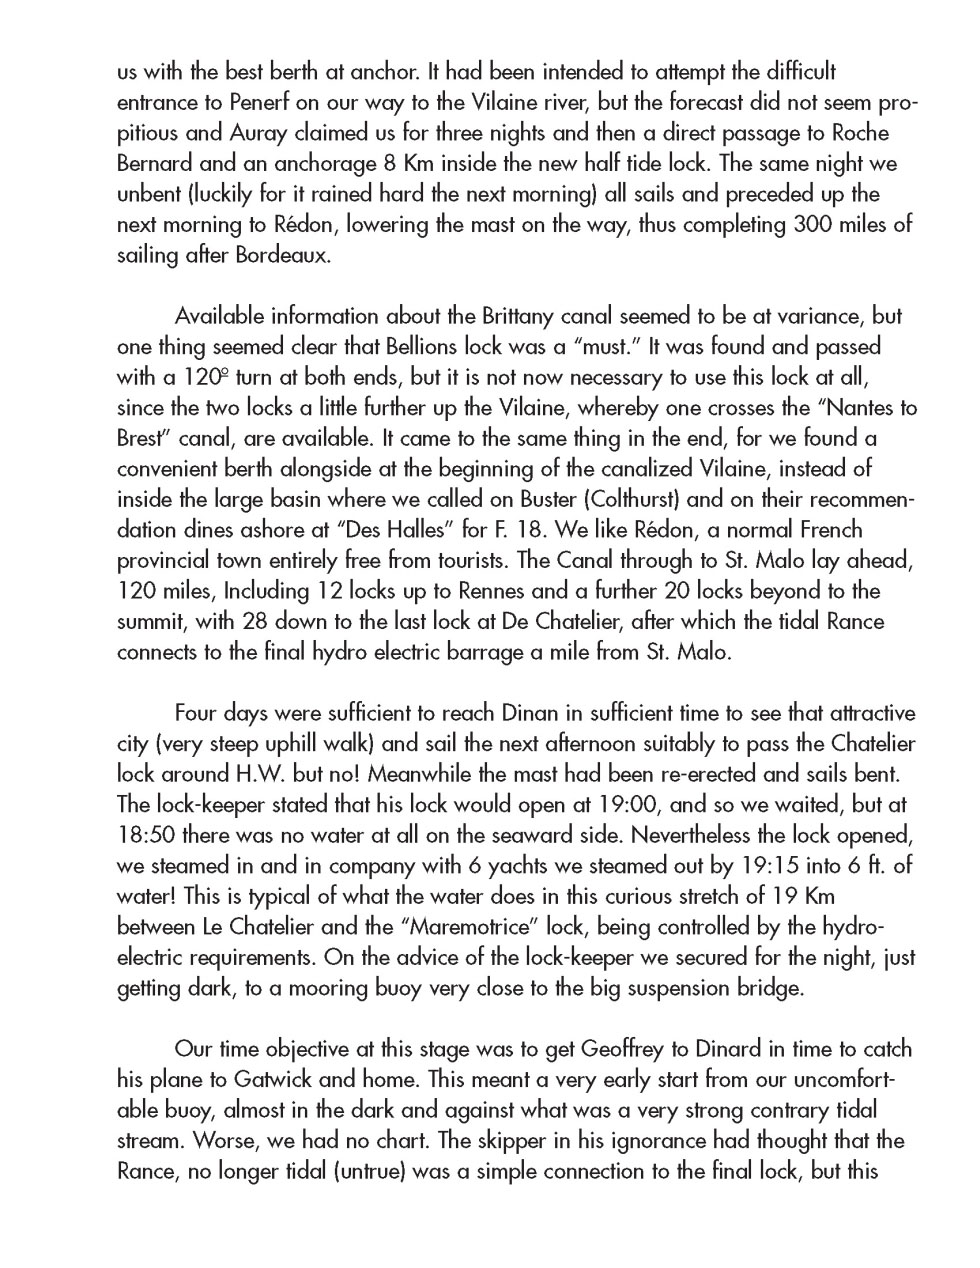 Narrative1971_Page_15